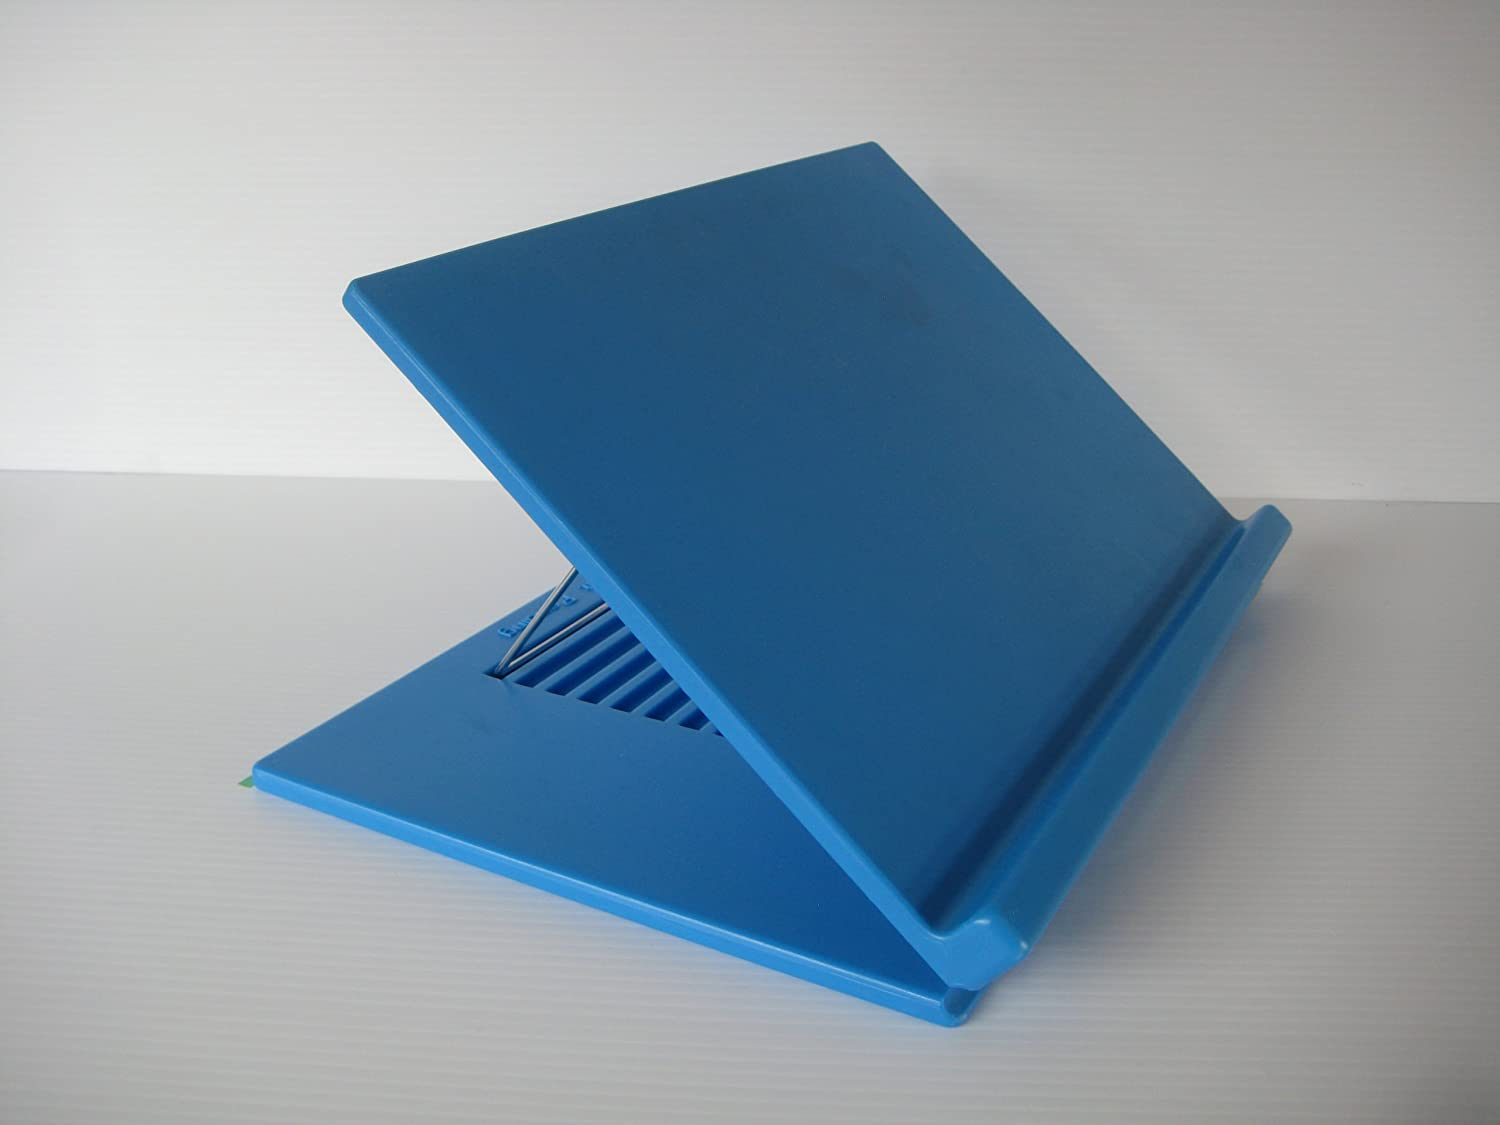 Book Holder, Slant Board, Laptop Holder, Right Angle Holder, Document Holder (pro blue)